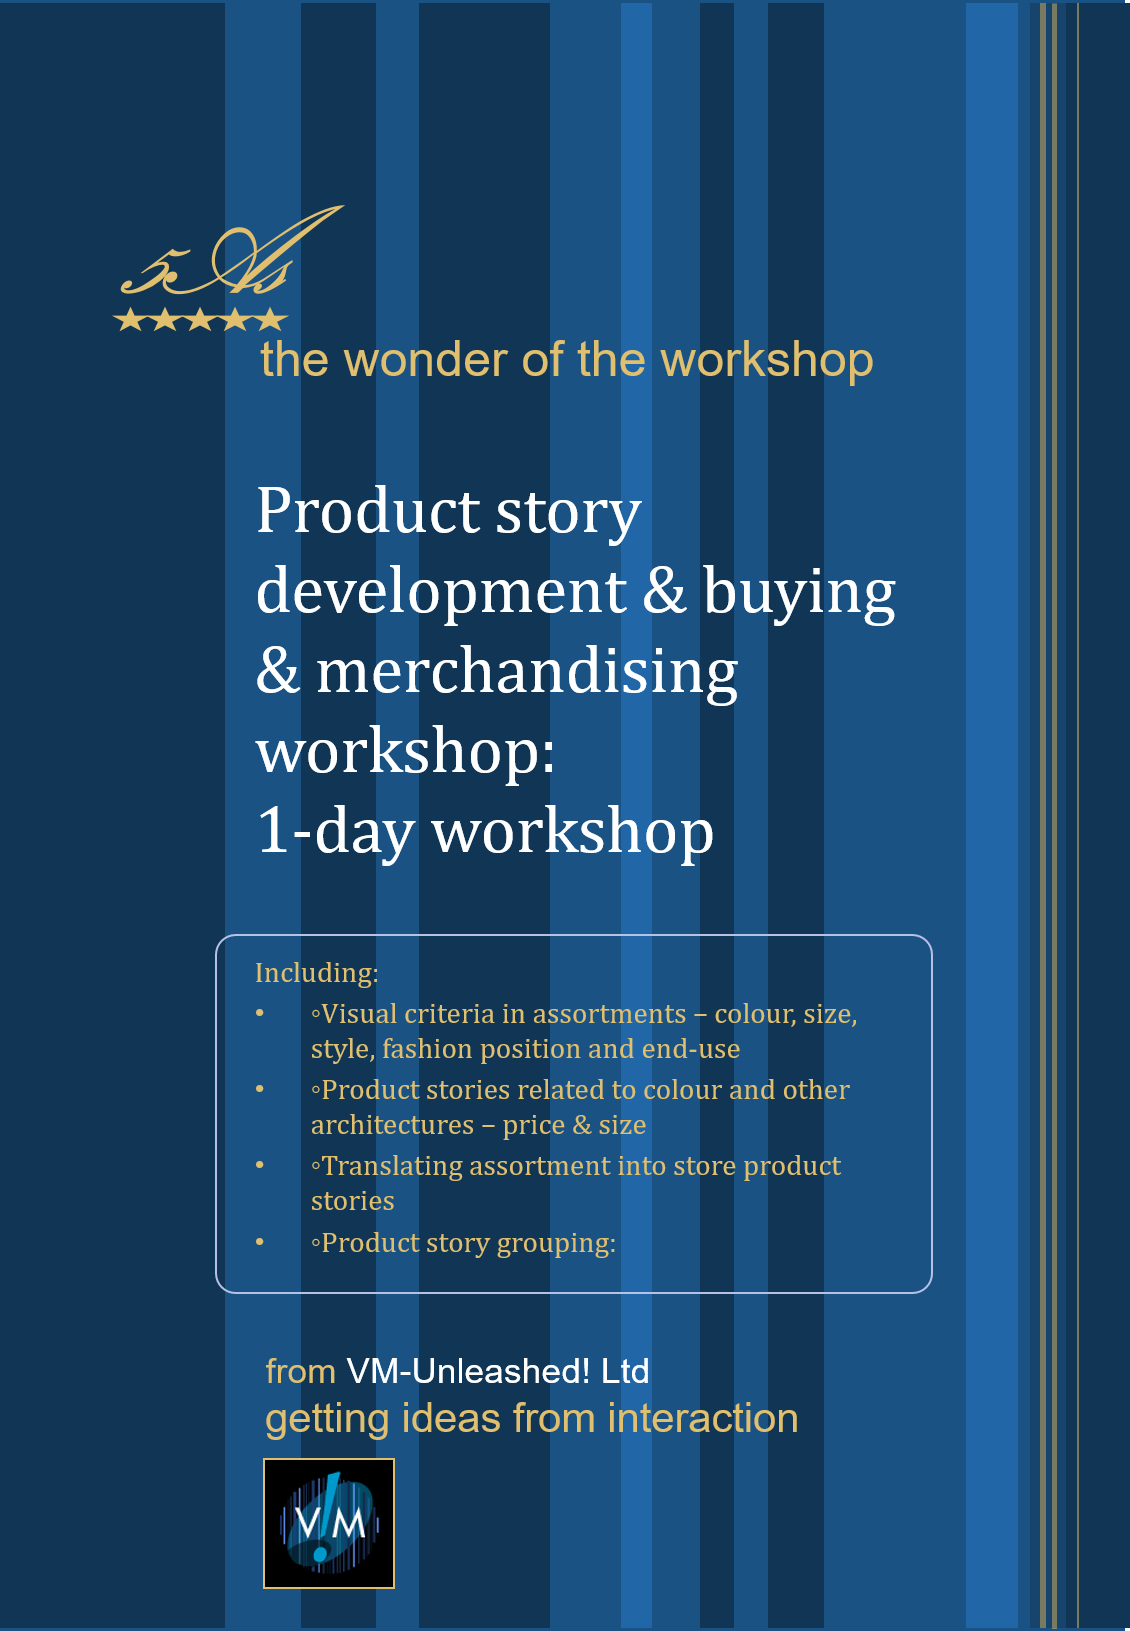 vm-unleashed-workshop-product-story-buying-merchandising